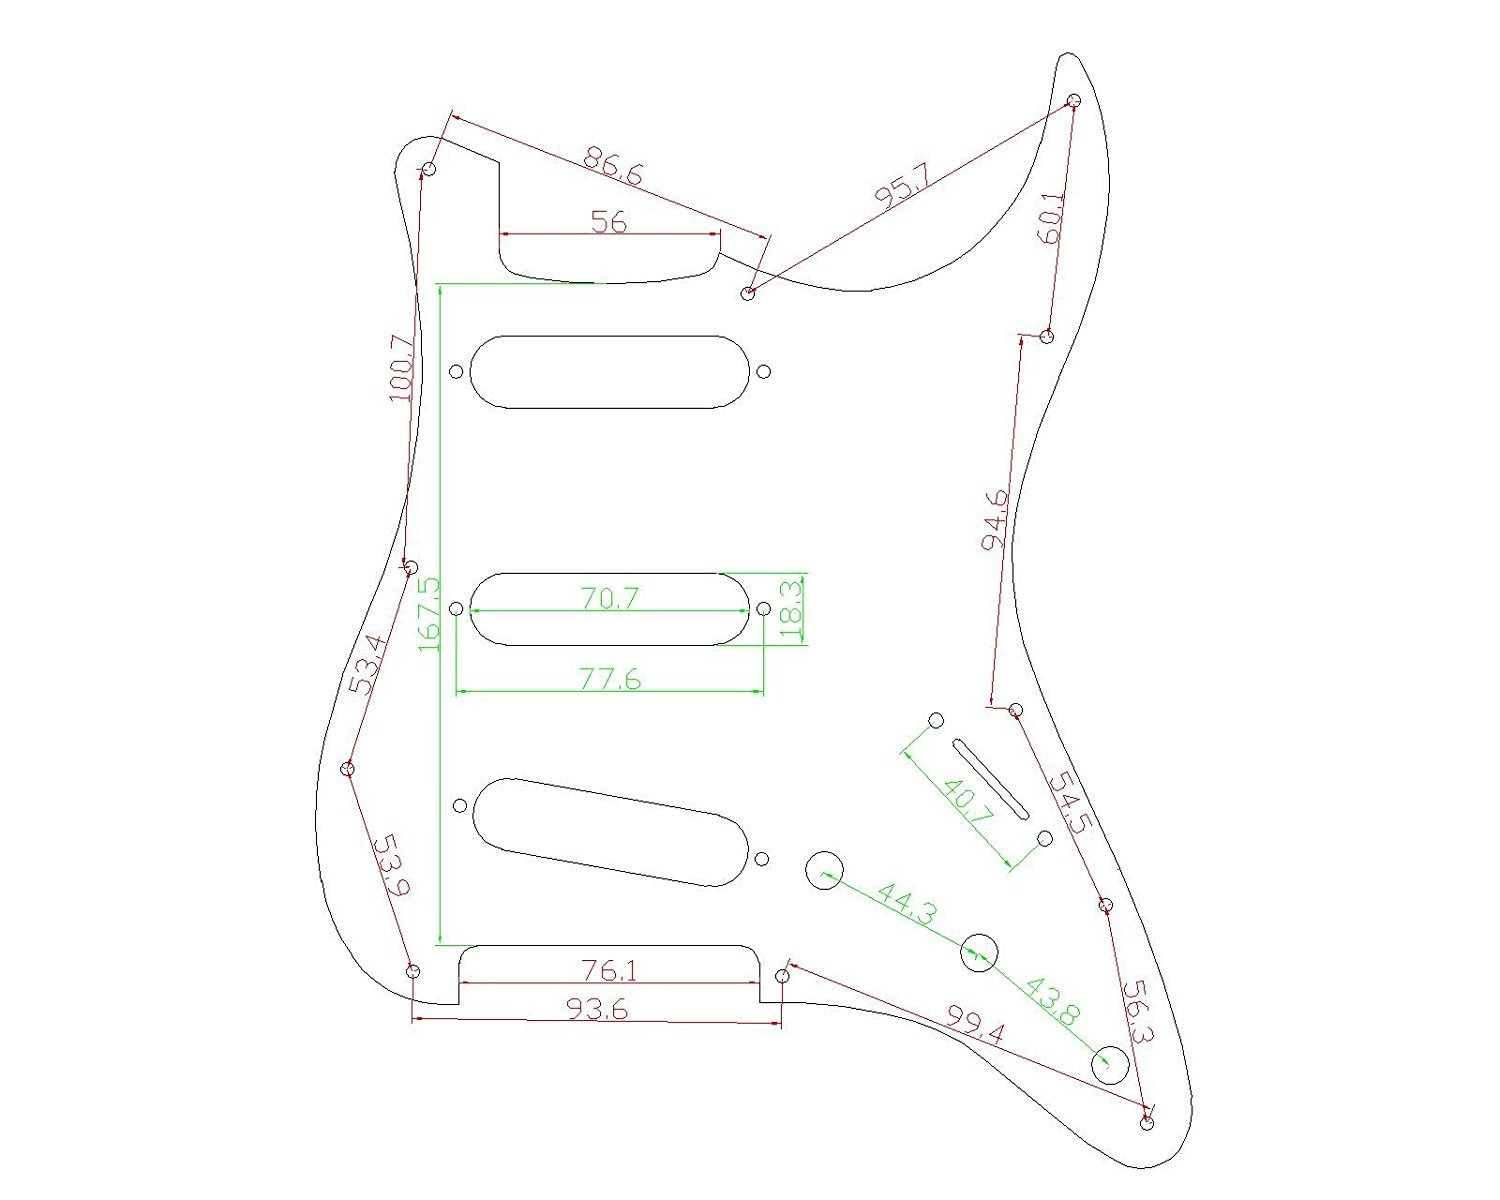 Stratocaster-Pickguard-For-Fender-US-Mexico-Strat-Electric-Guitar thumbnail 35